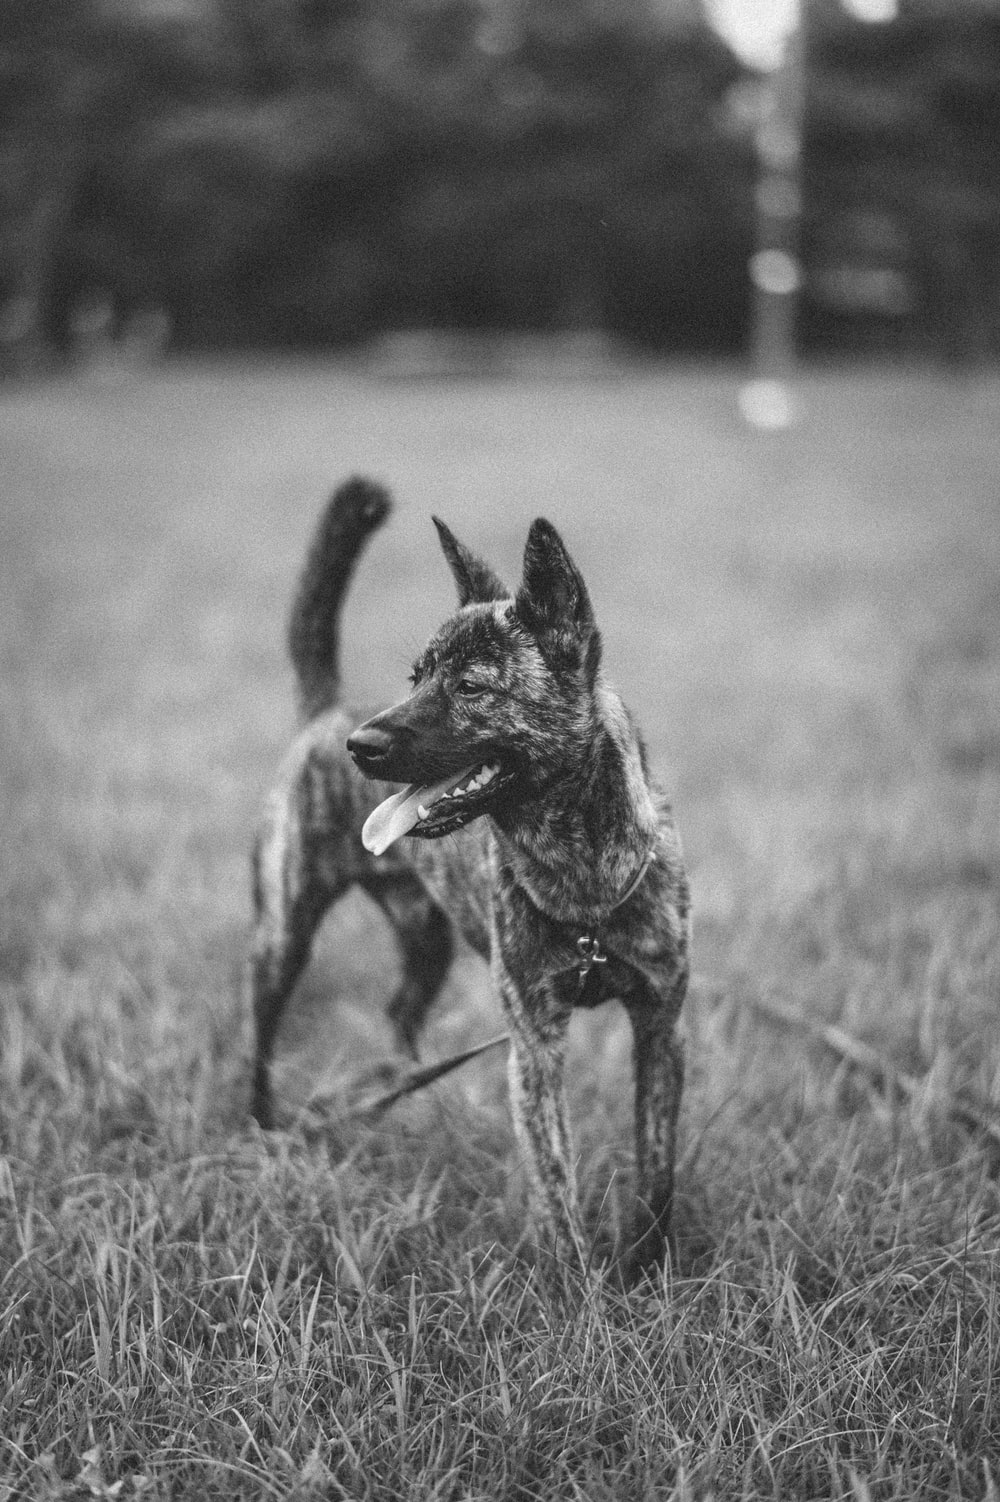 grayscale photo of short coated dog on grass field